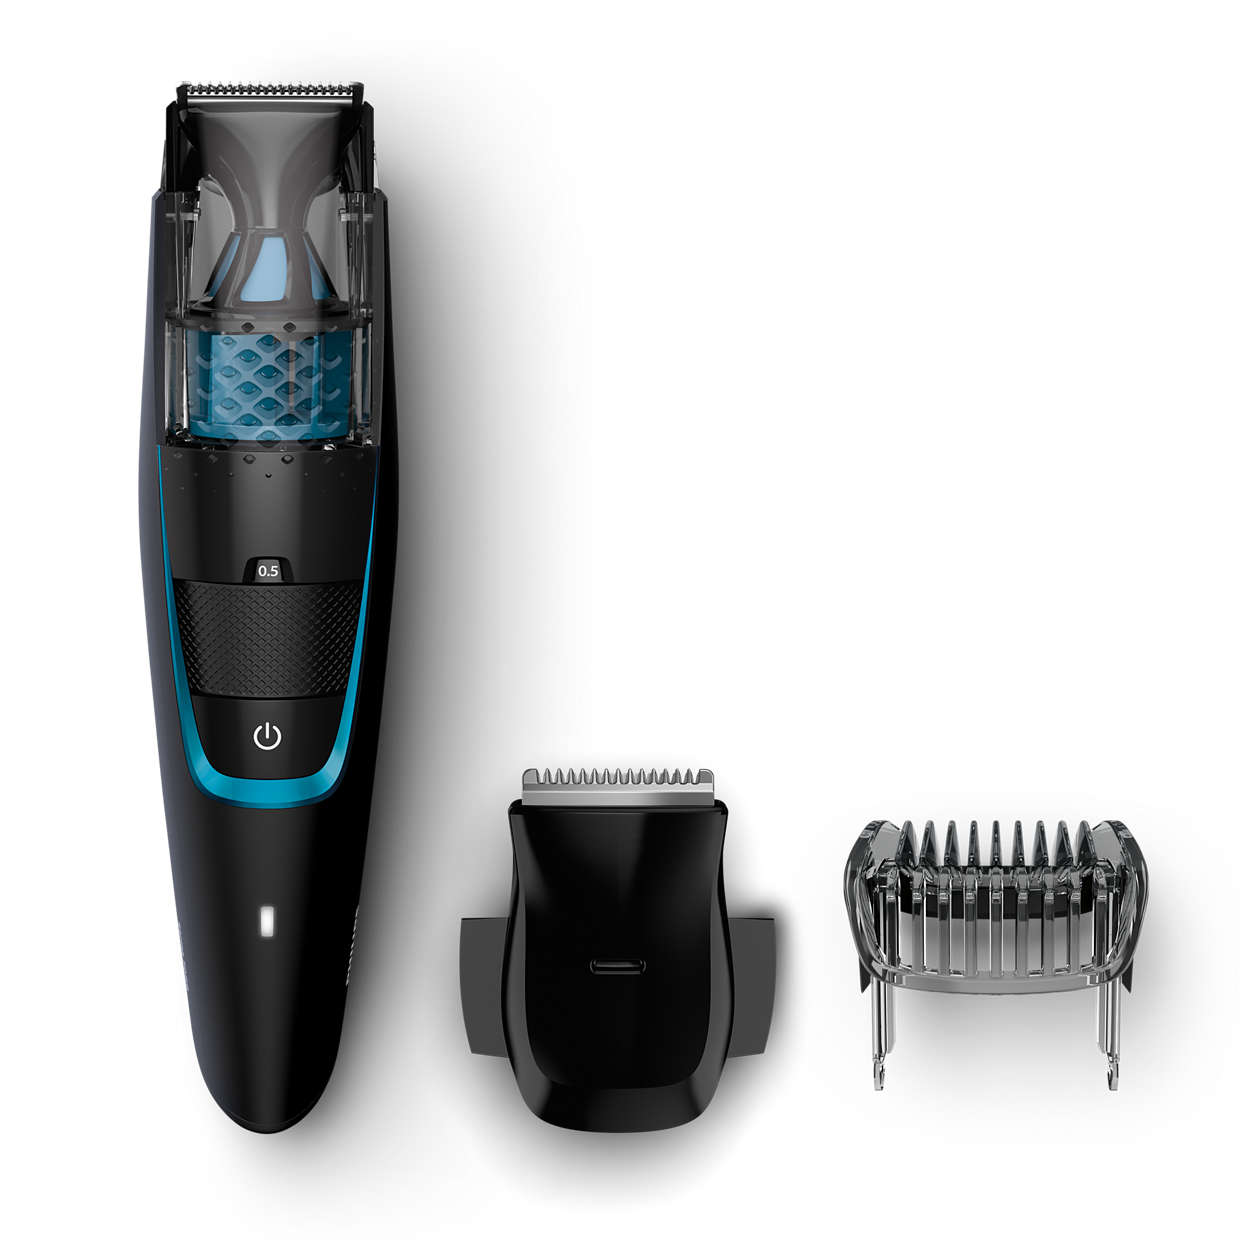 beardtrimmer series 7000 vacuum beard stubble trimmer bt7202 13 philips. Black Bedroom Furniture Sets. Home Design Ideas